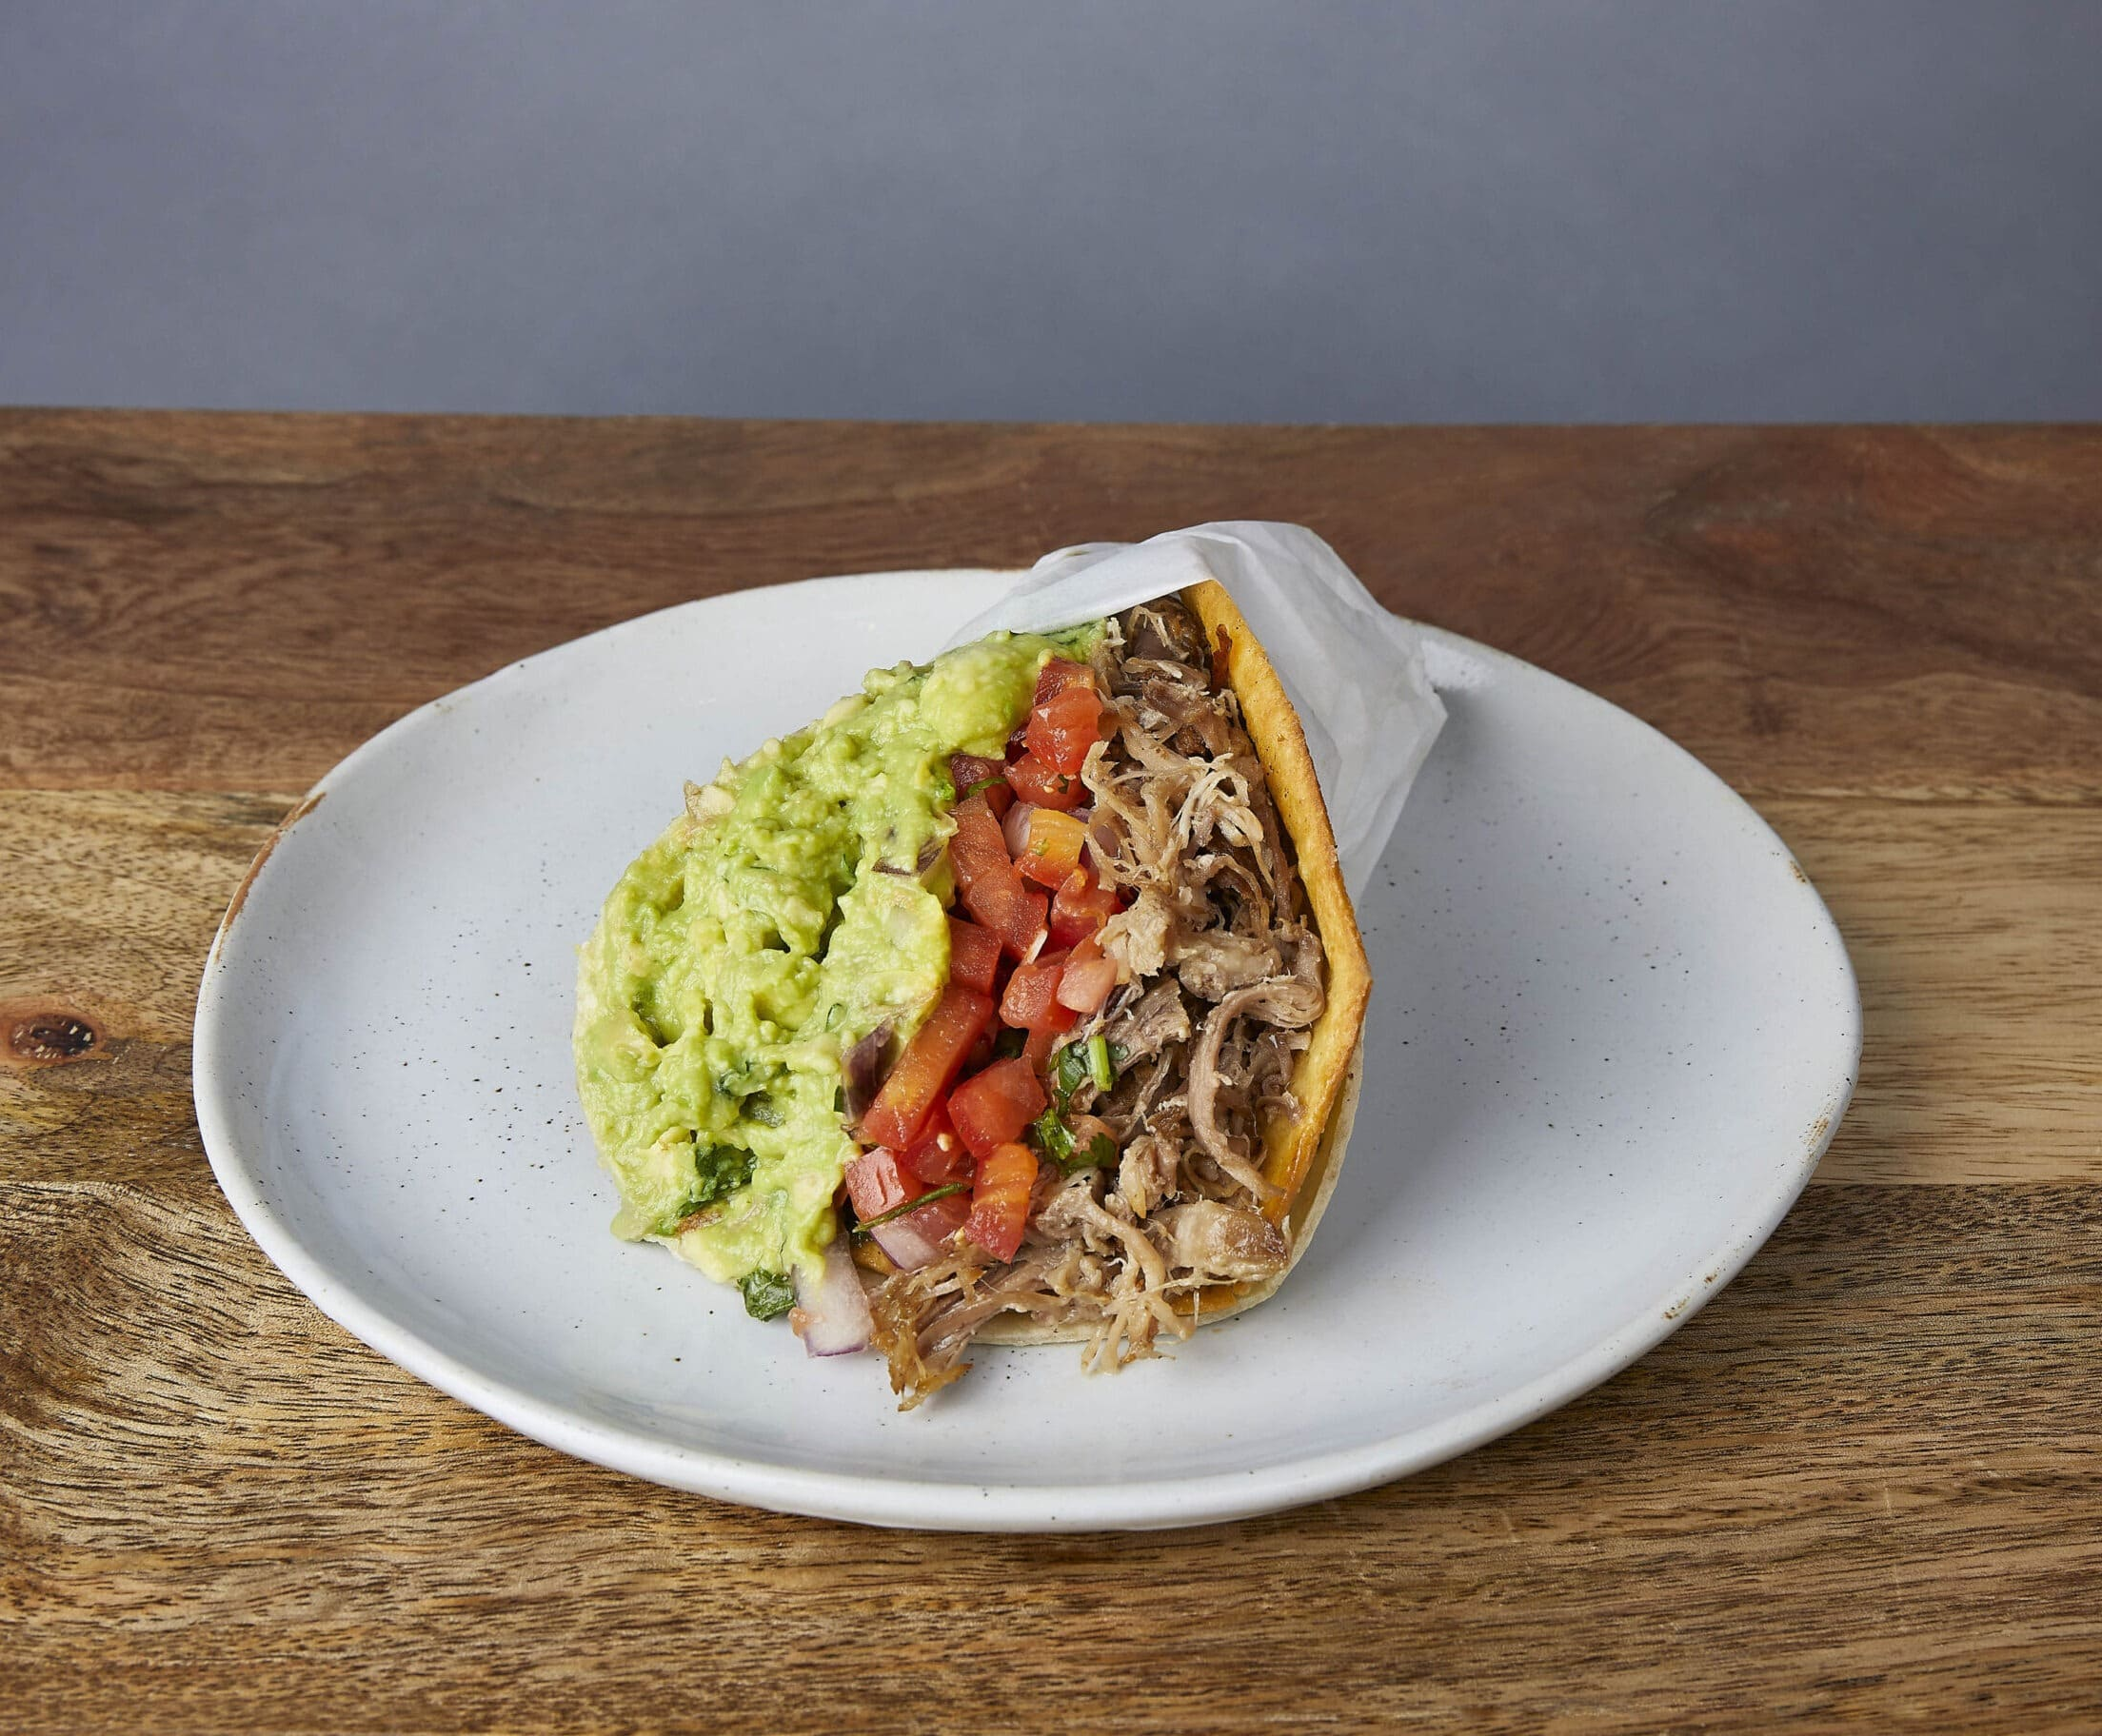 Image of a carnitas nick's way taco